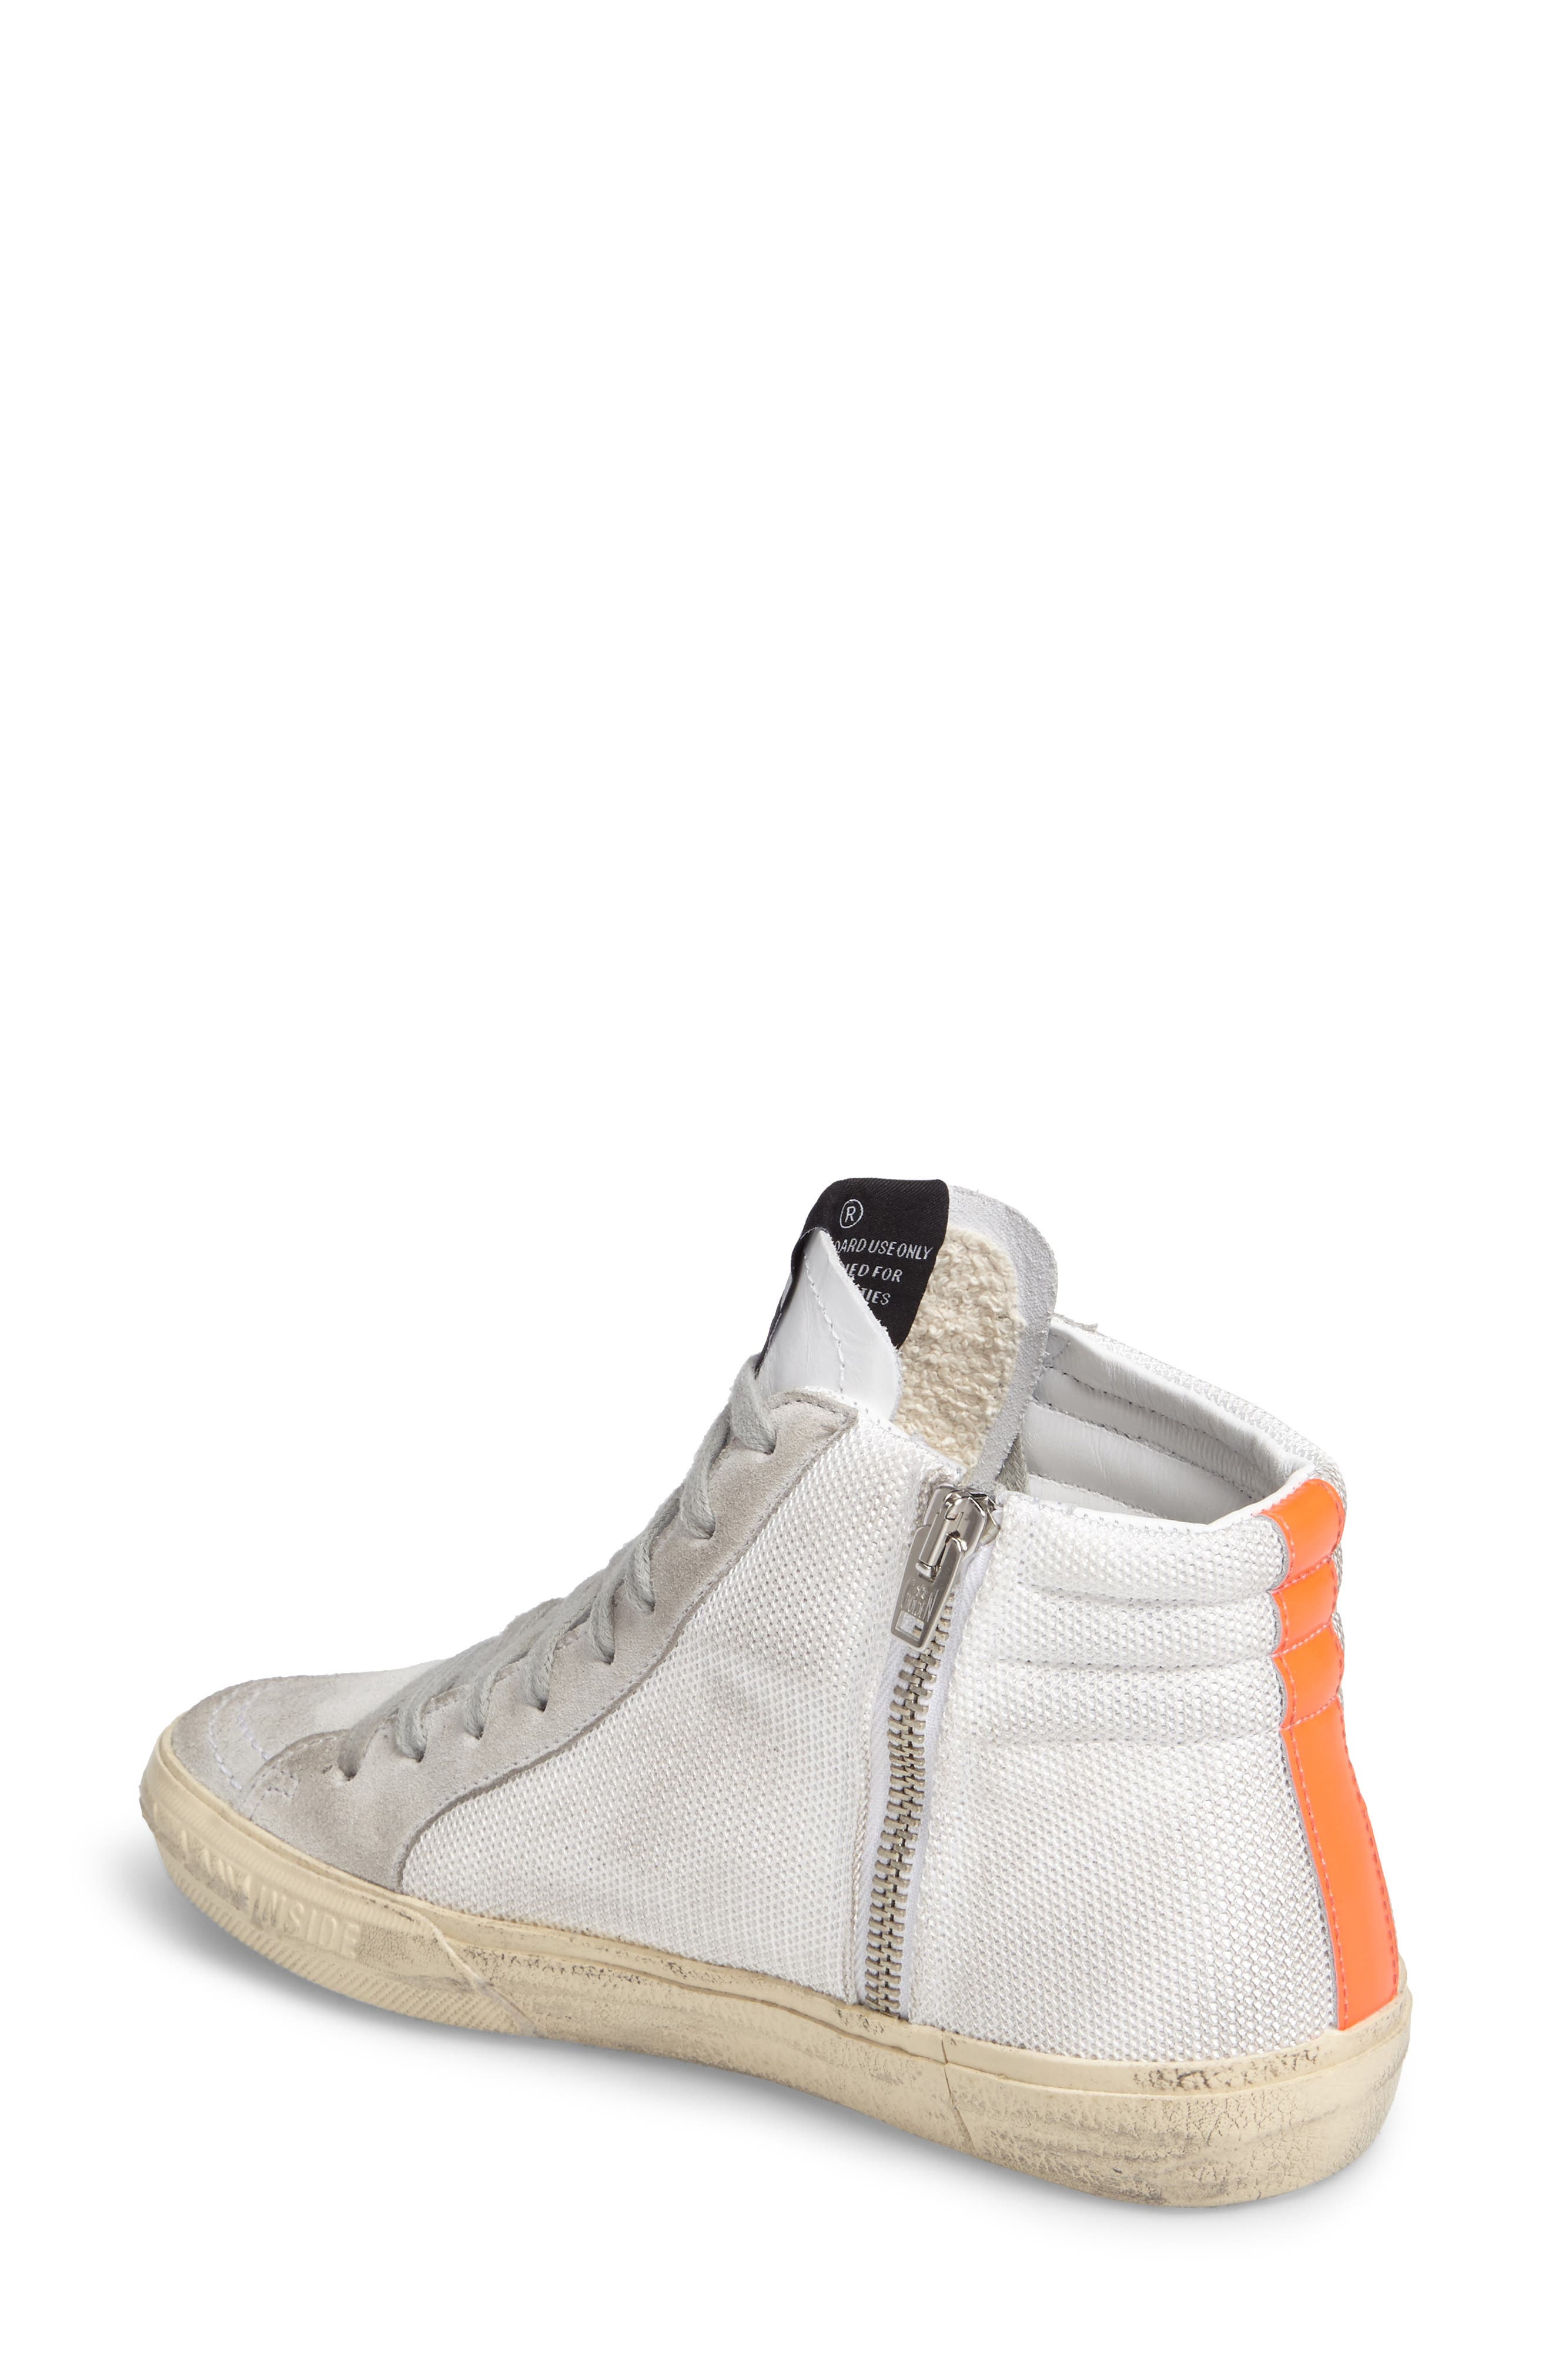 Slide High Top Sneaker,                             Alternate thumbnail 2, color,                             100